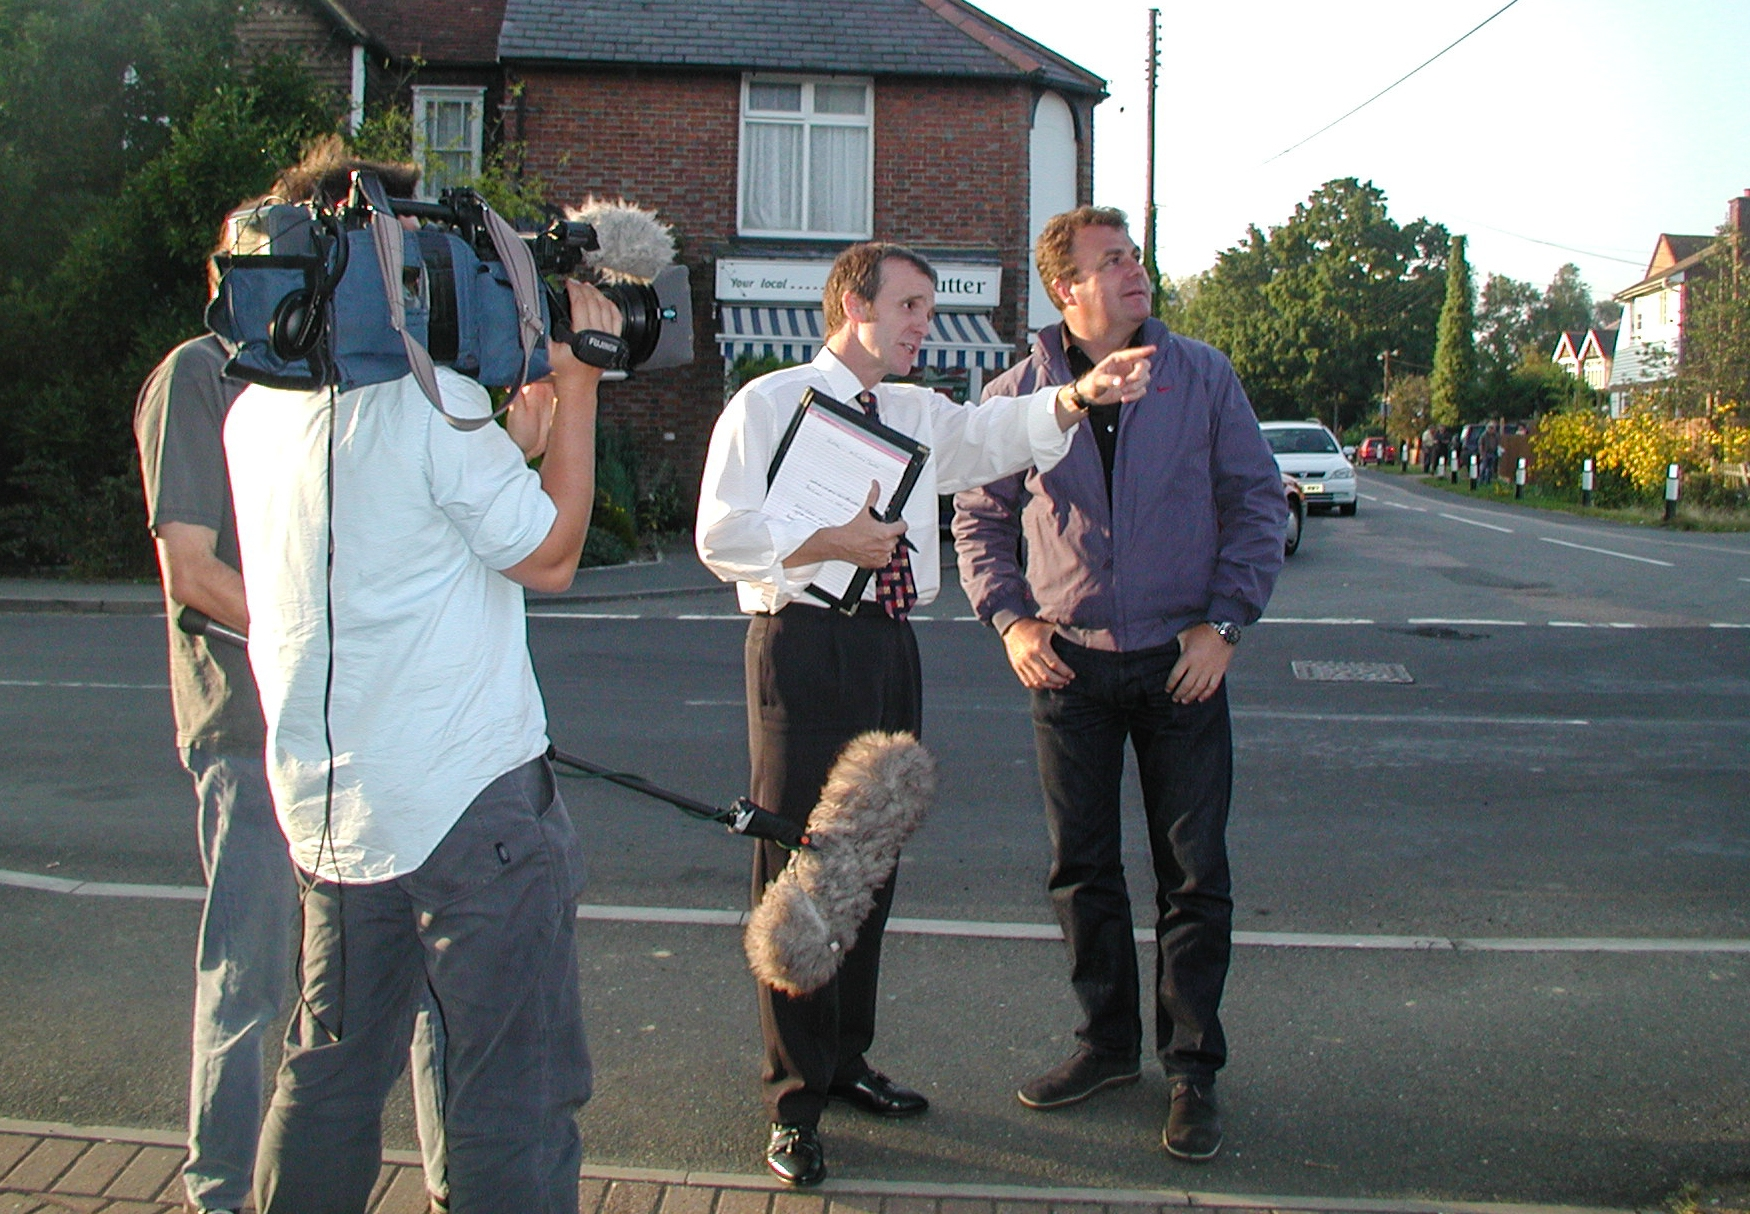 Filming BBC Inside Out 2